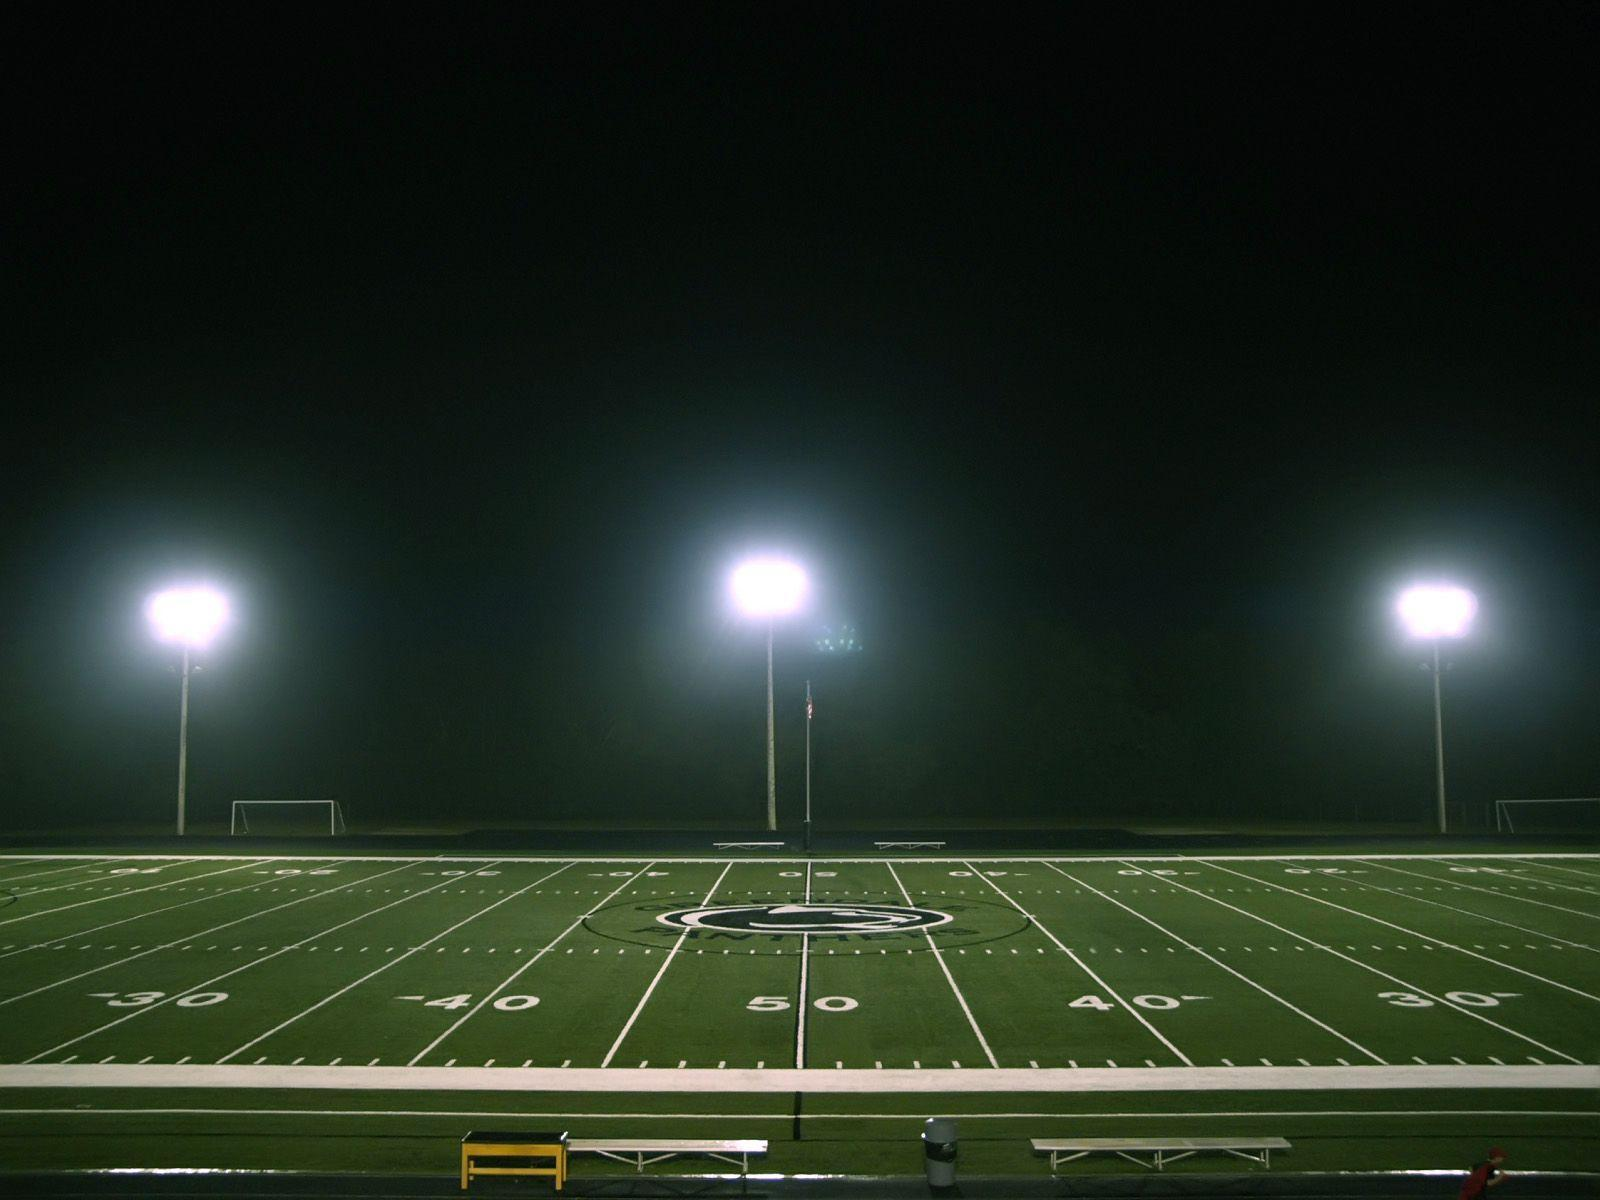 Gallery For gt Football Field At Night Wallpaper 1600x1200